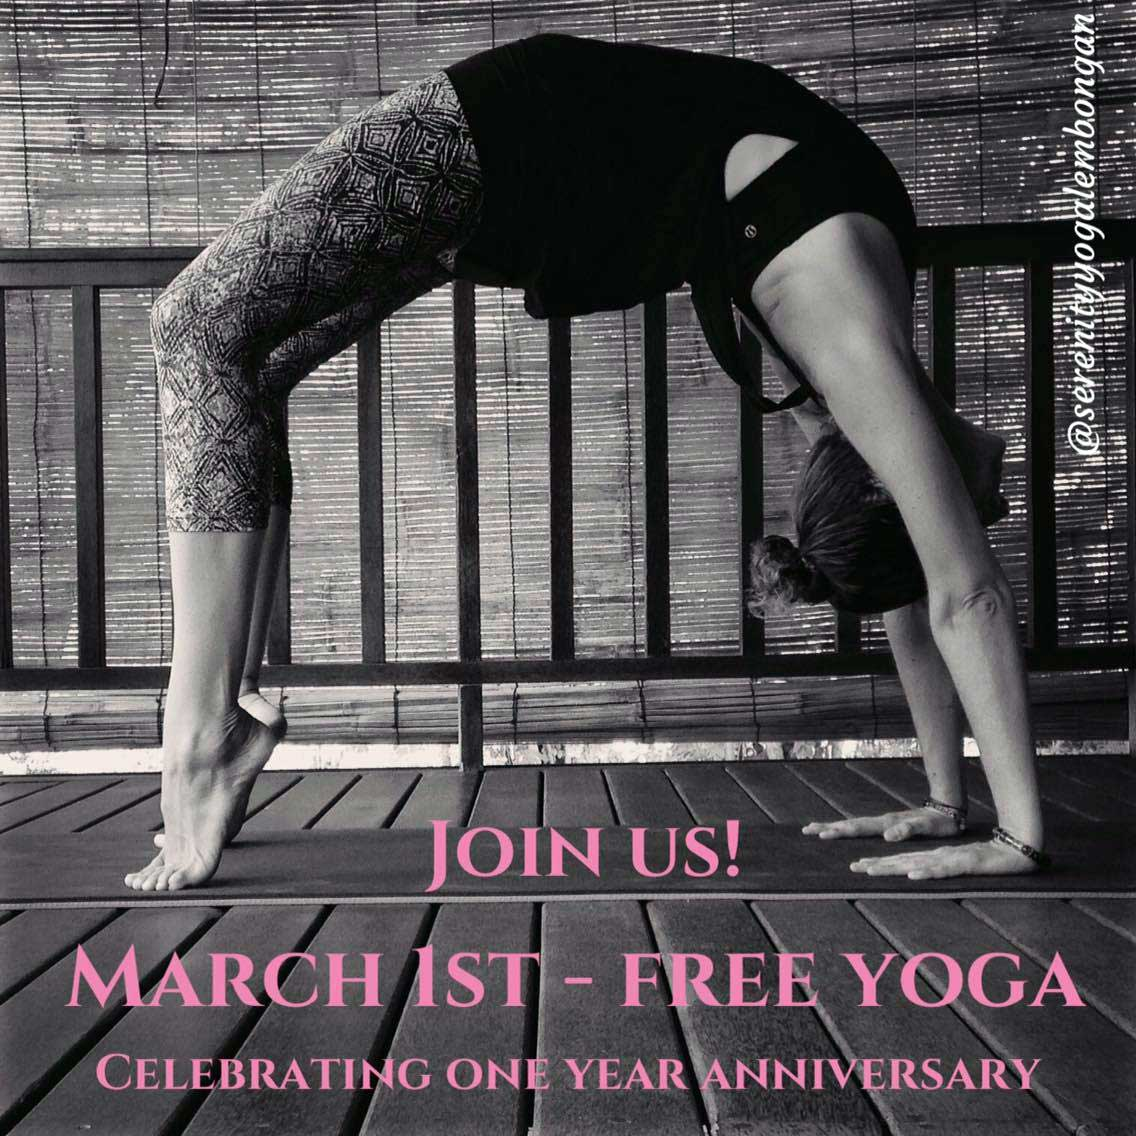 Join us for free yoga